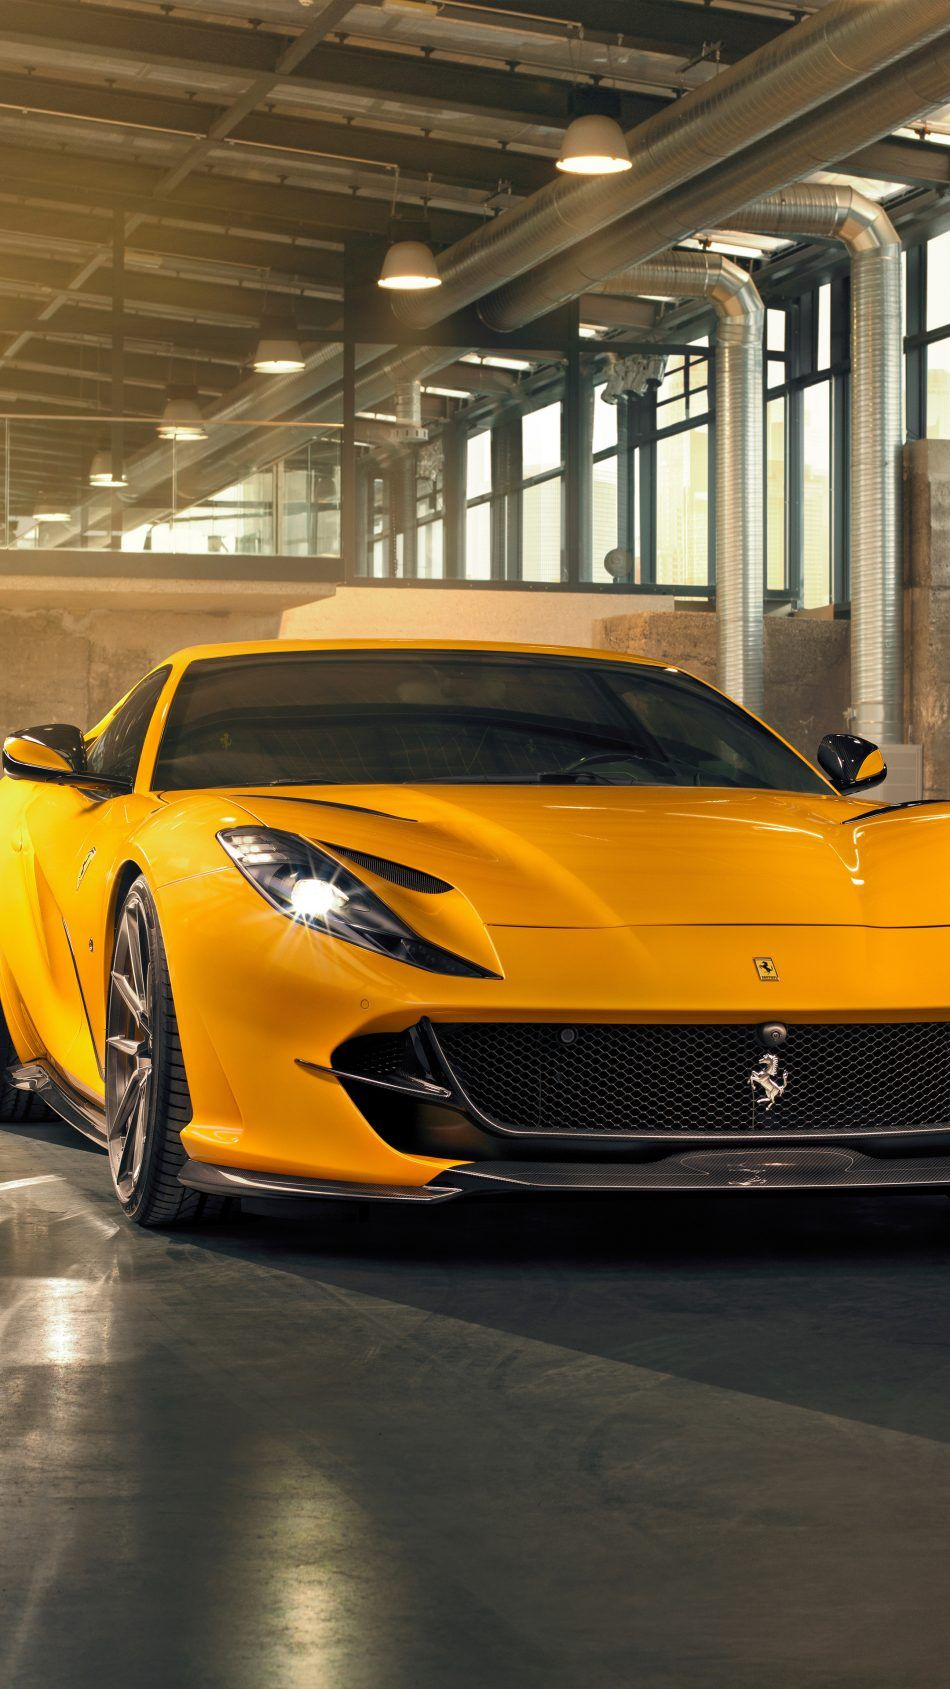 Yellow Ferrari 812 Superfast 2019 Car Wallpapers Ferrari Yellow Car